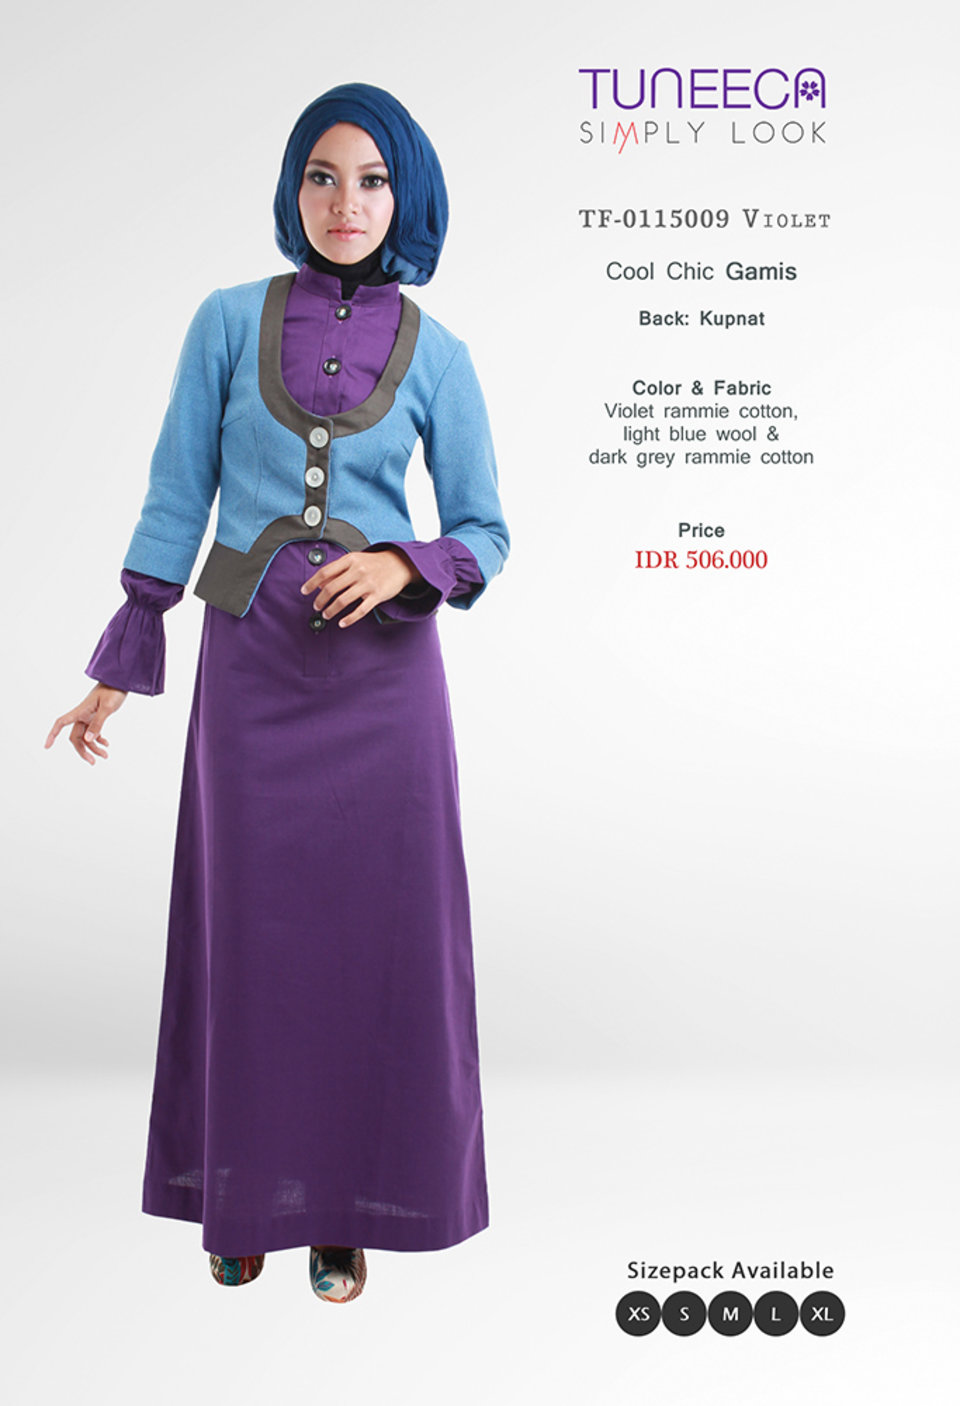 Cool Chic Gamis